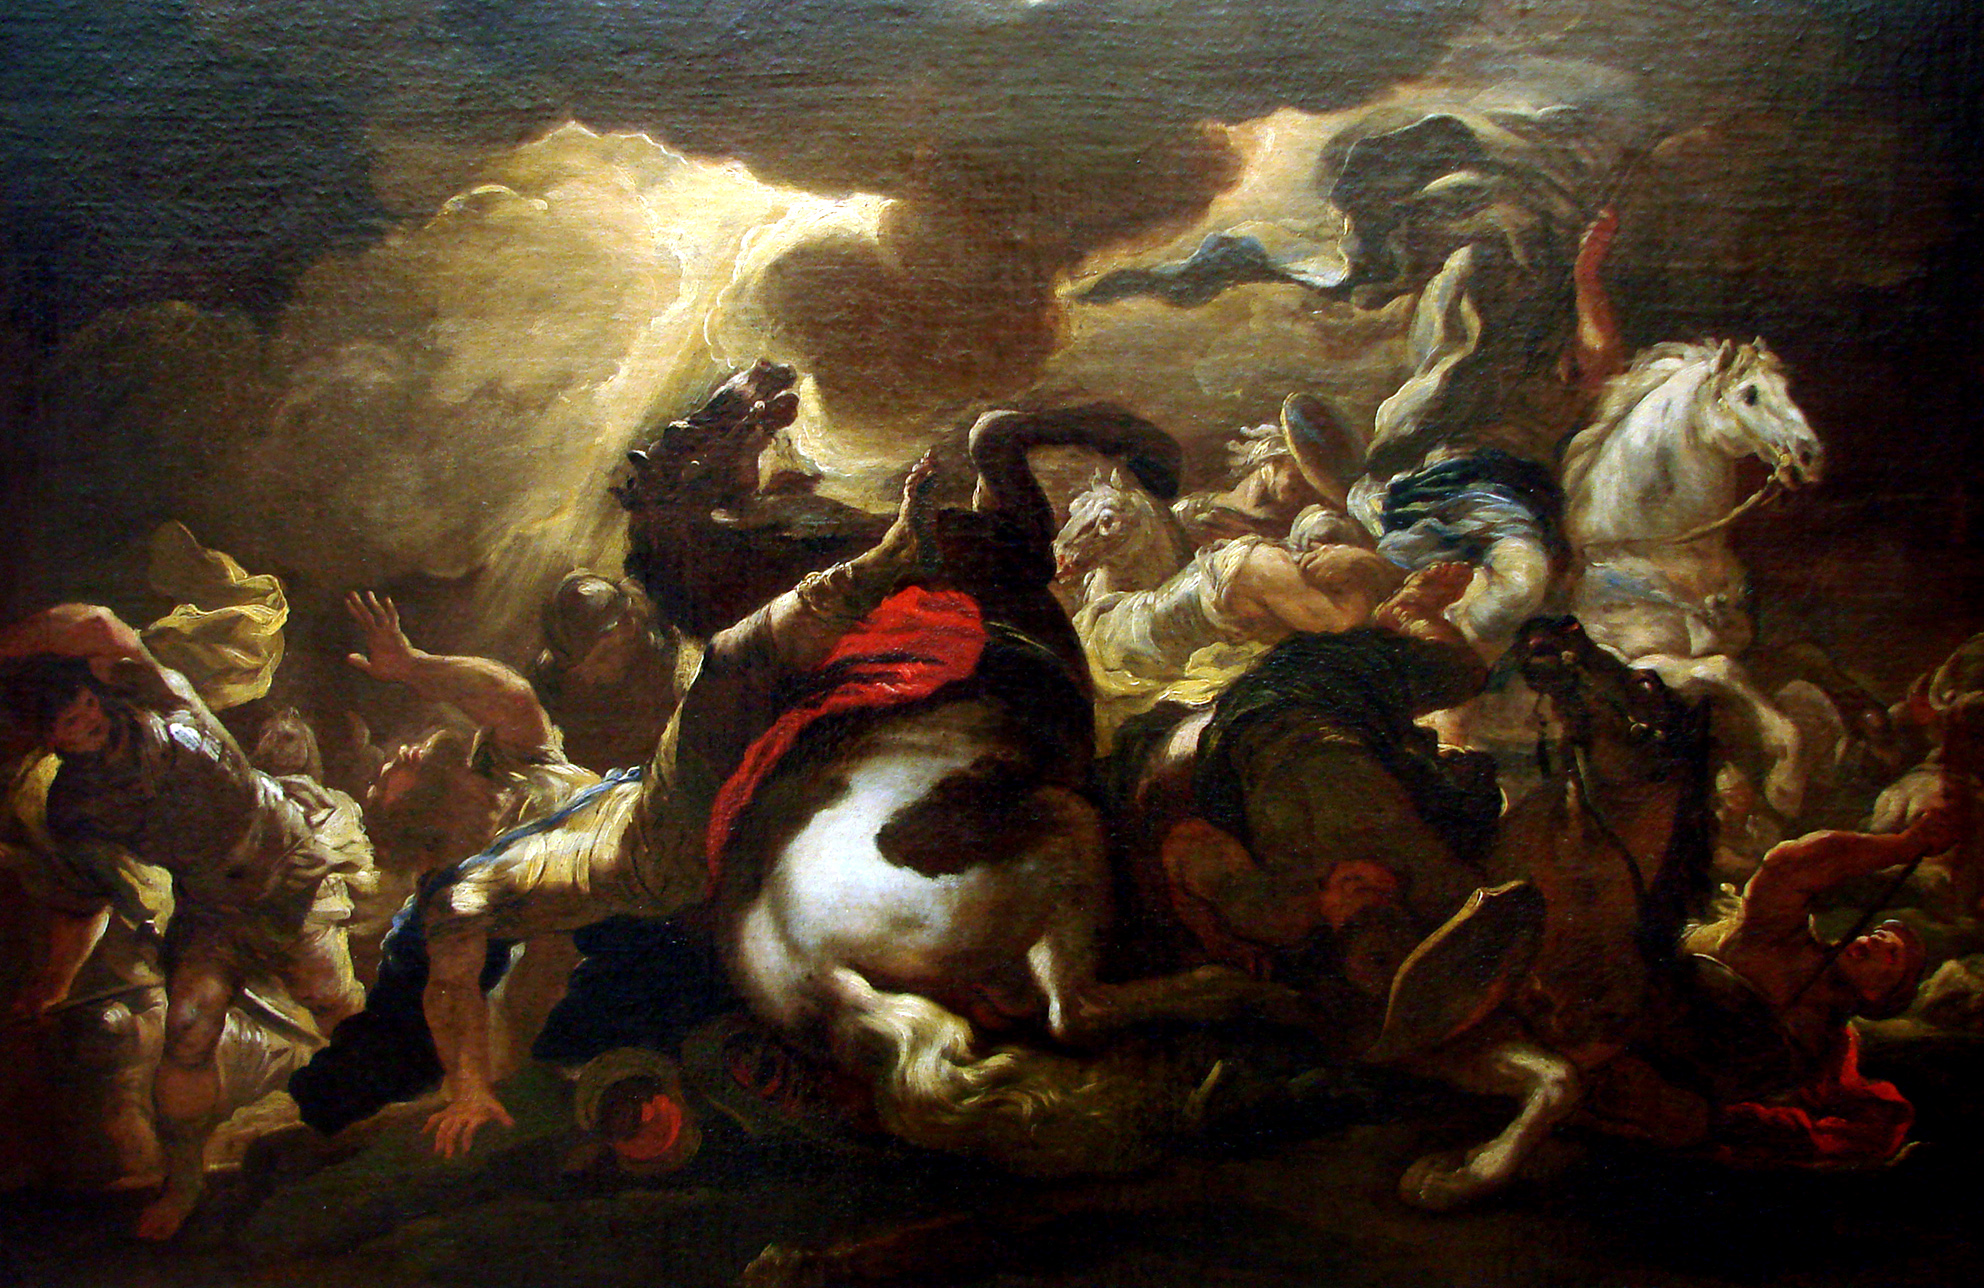 The Conversion of Saint Paul, by Giordano Nancy